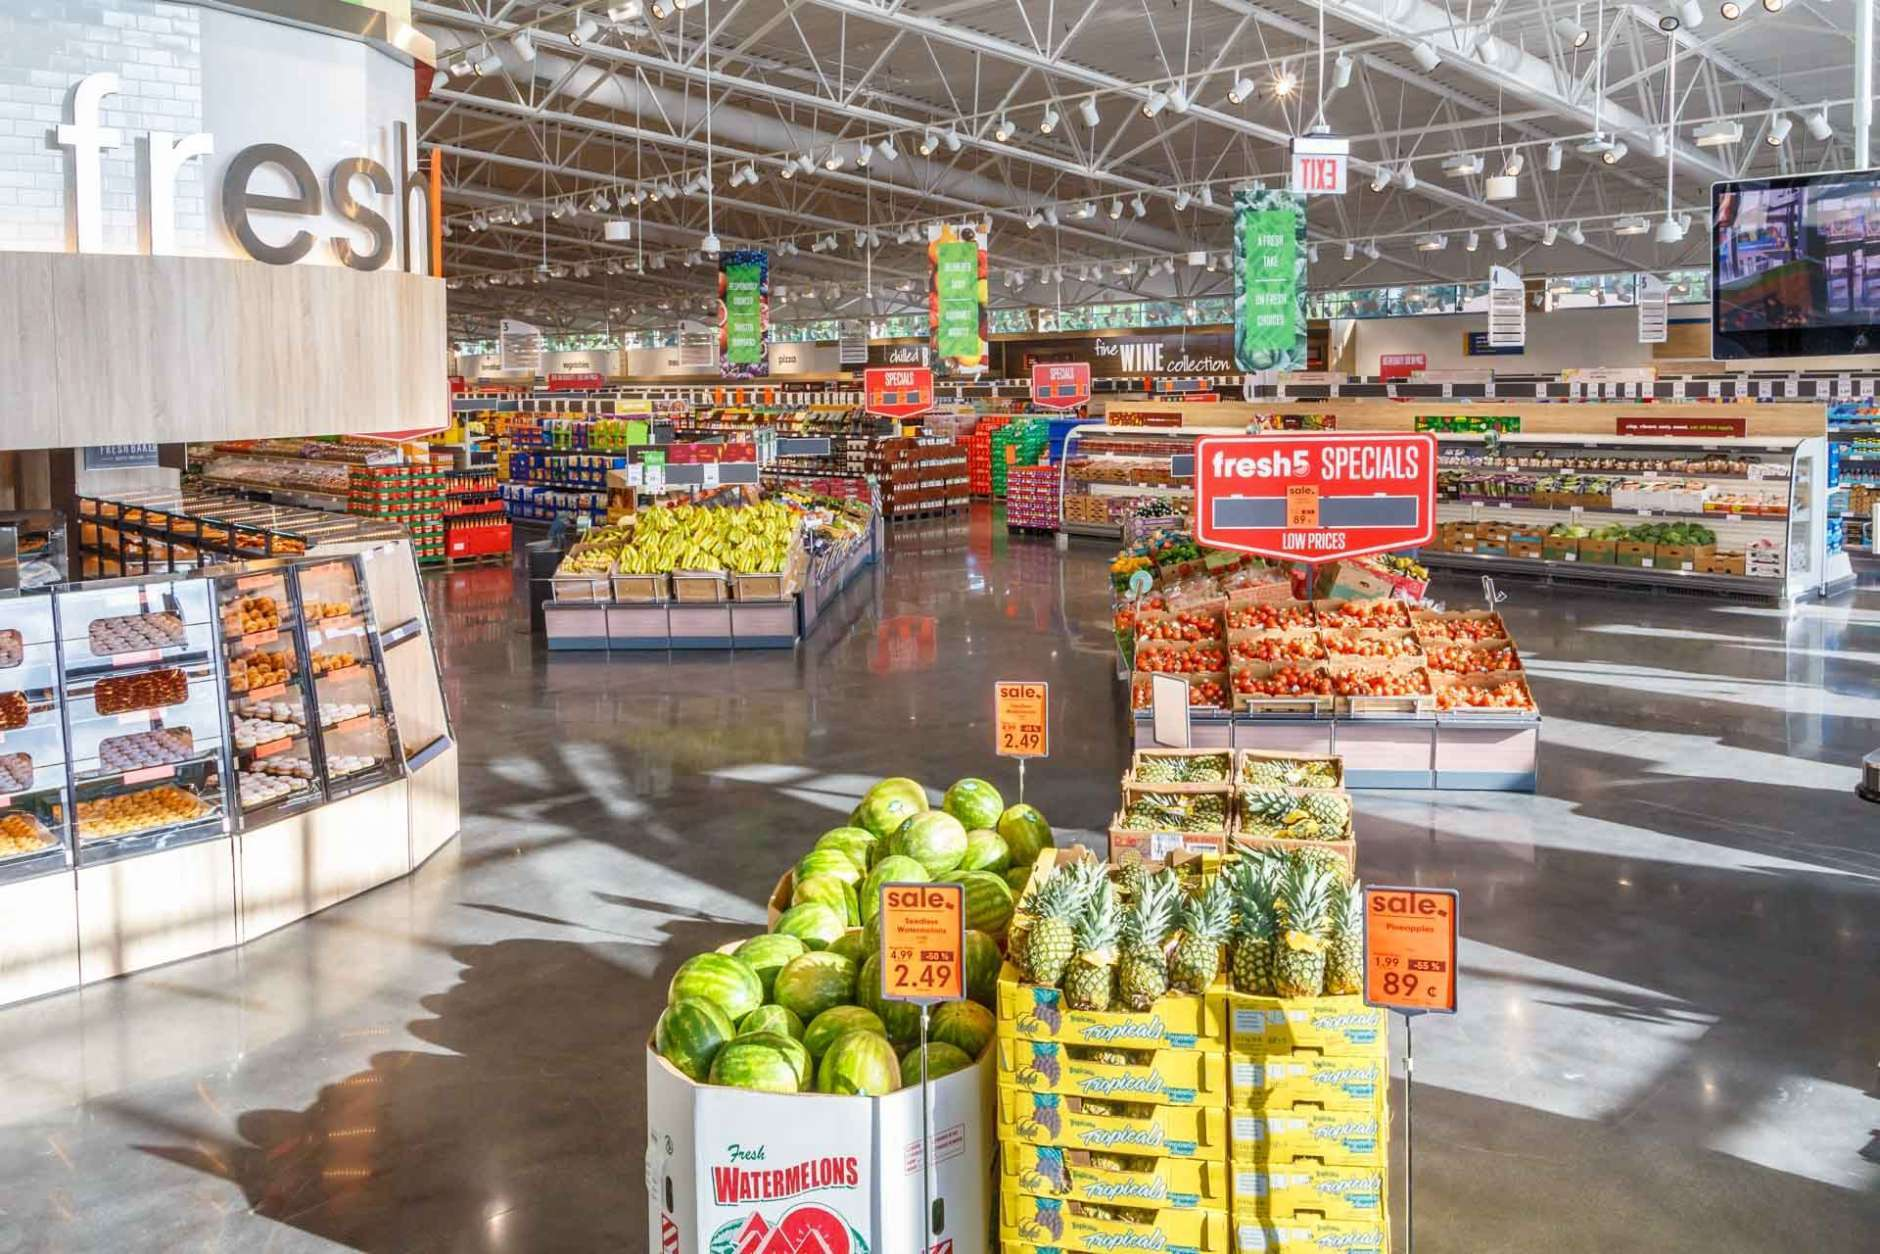 The Fredricksburg store at 1175 Warrenton Road will be Lidl's 13th store in Virginia since launching its east coast blitz. (Courtesy Lidl)